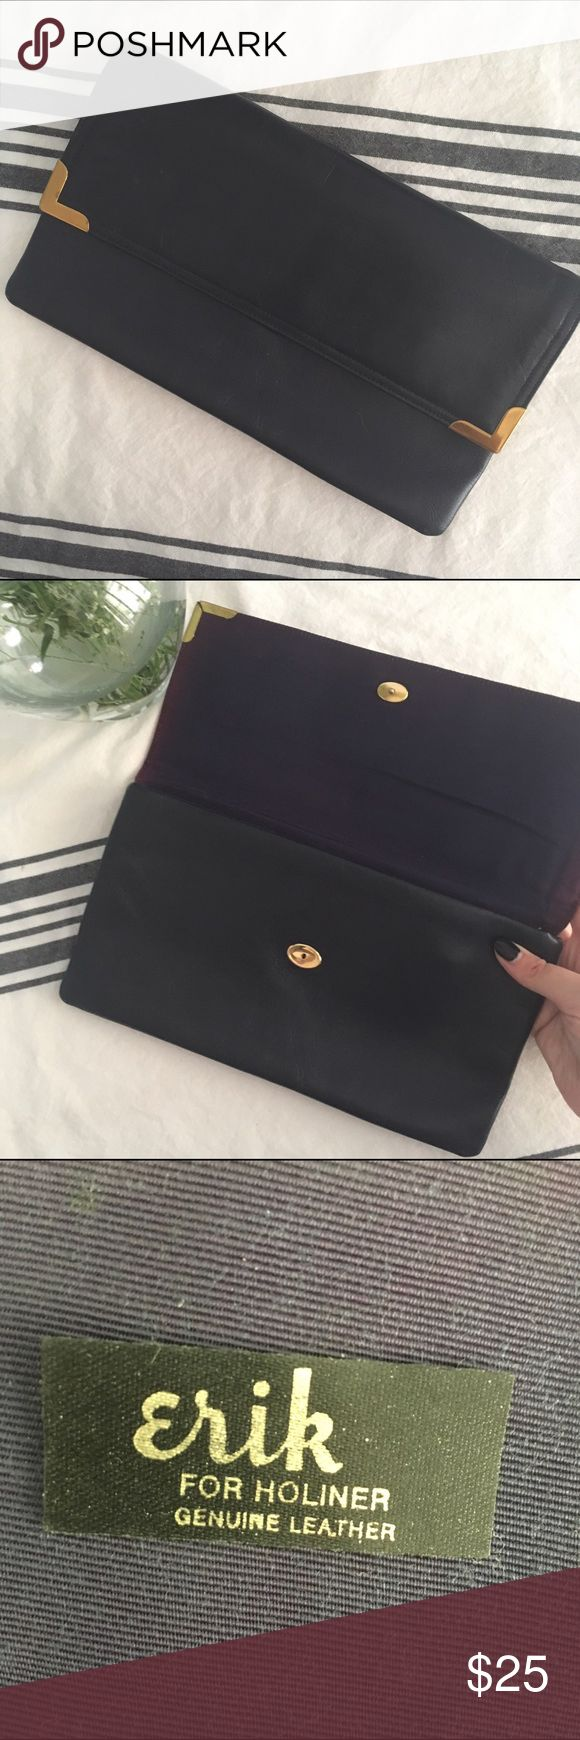 Vintage genuine leather navy clutch C. 1950s envelope-style Eric for Holiner clutch. Dark navy in great condition. The purpleish fabric on the inside has faded. Button close with great gold accents. Eric for Holiner tag is sitting inside the zipper pocket inside. Vintage Bags Clutches & Wristlets